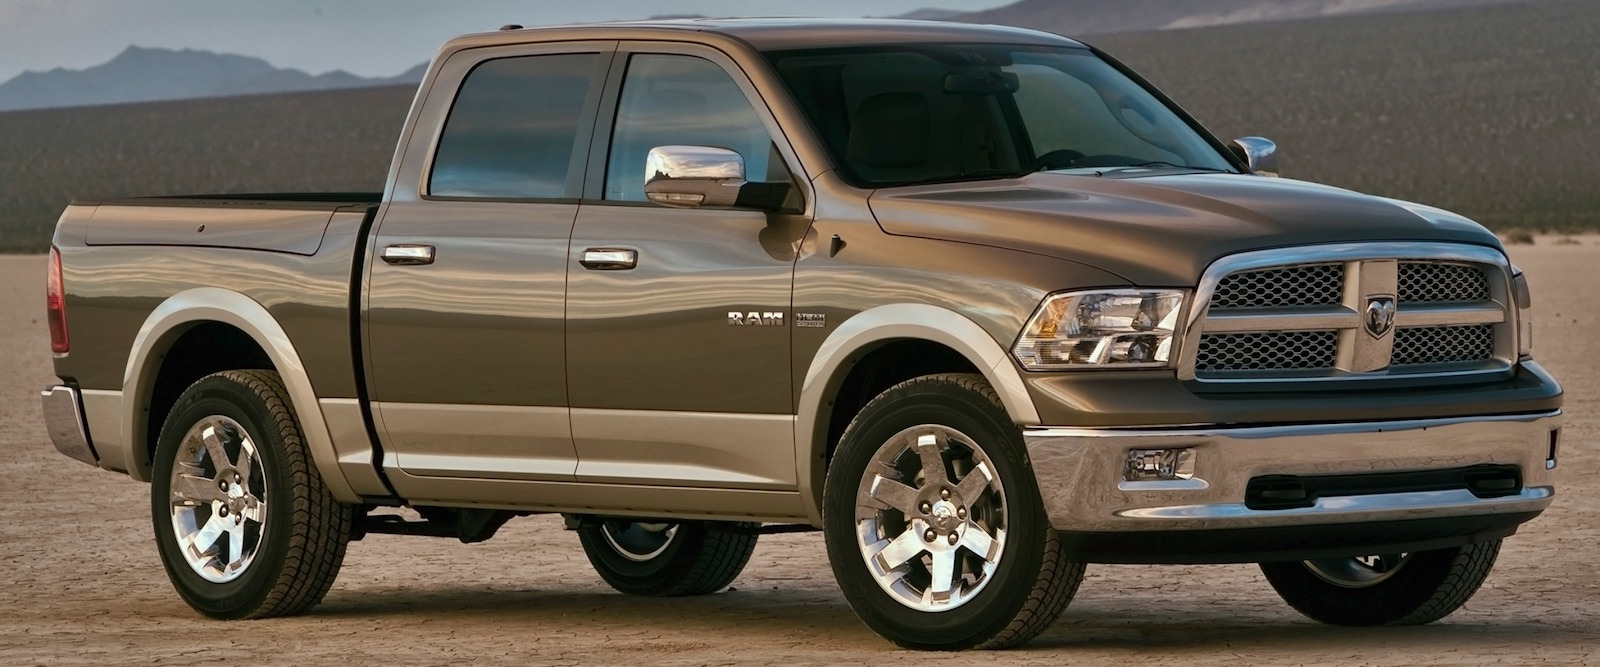 2010 Ram 1500 driving through the desert – Colorado Springs, CO